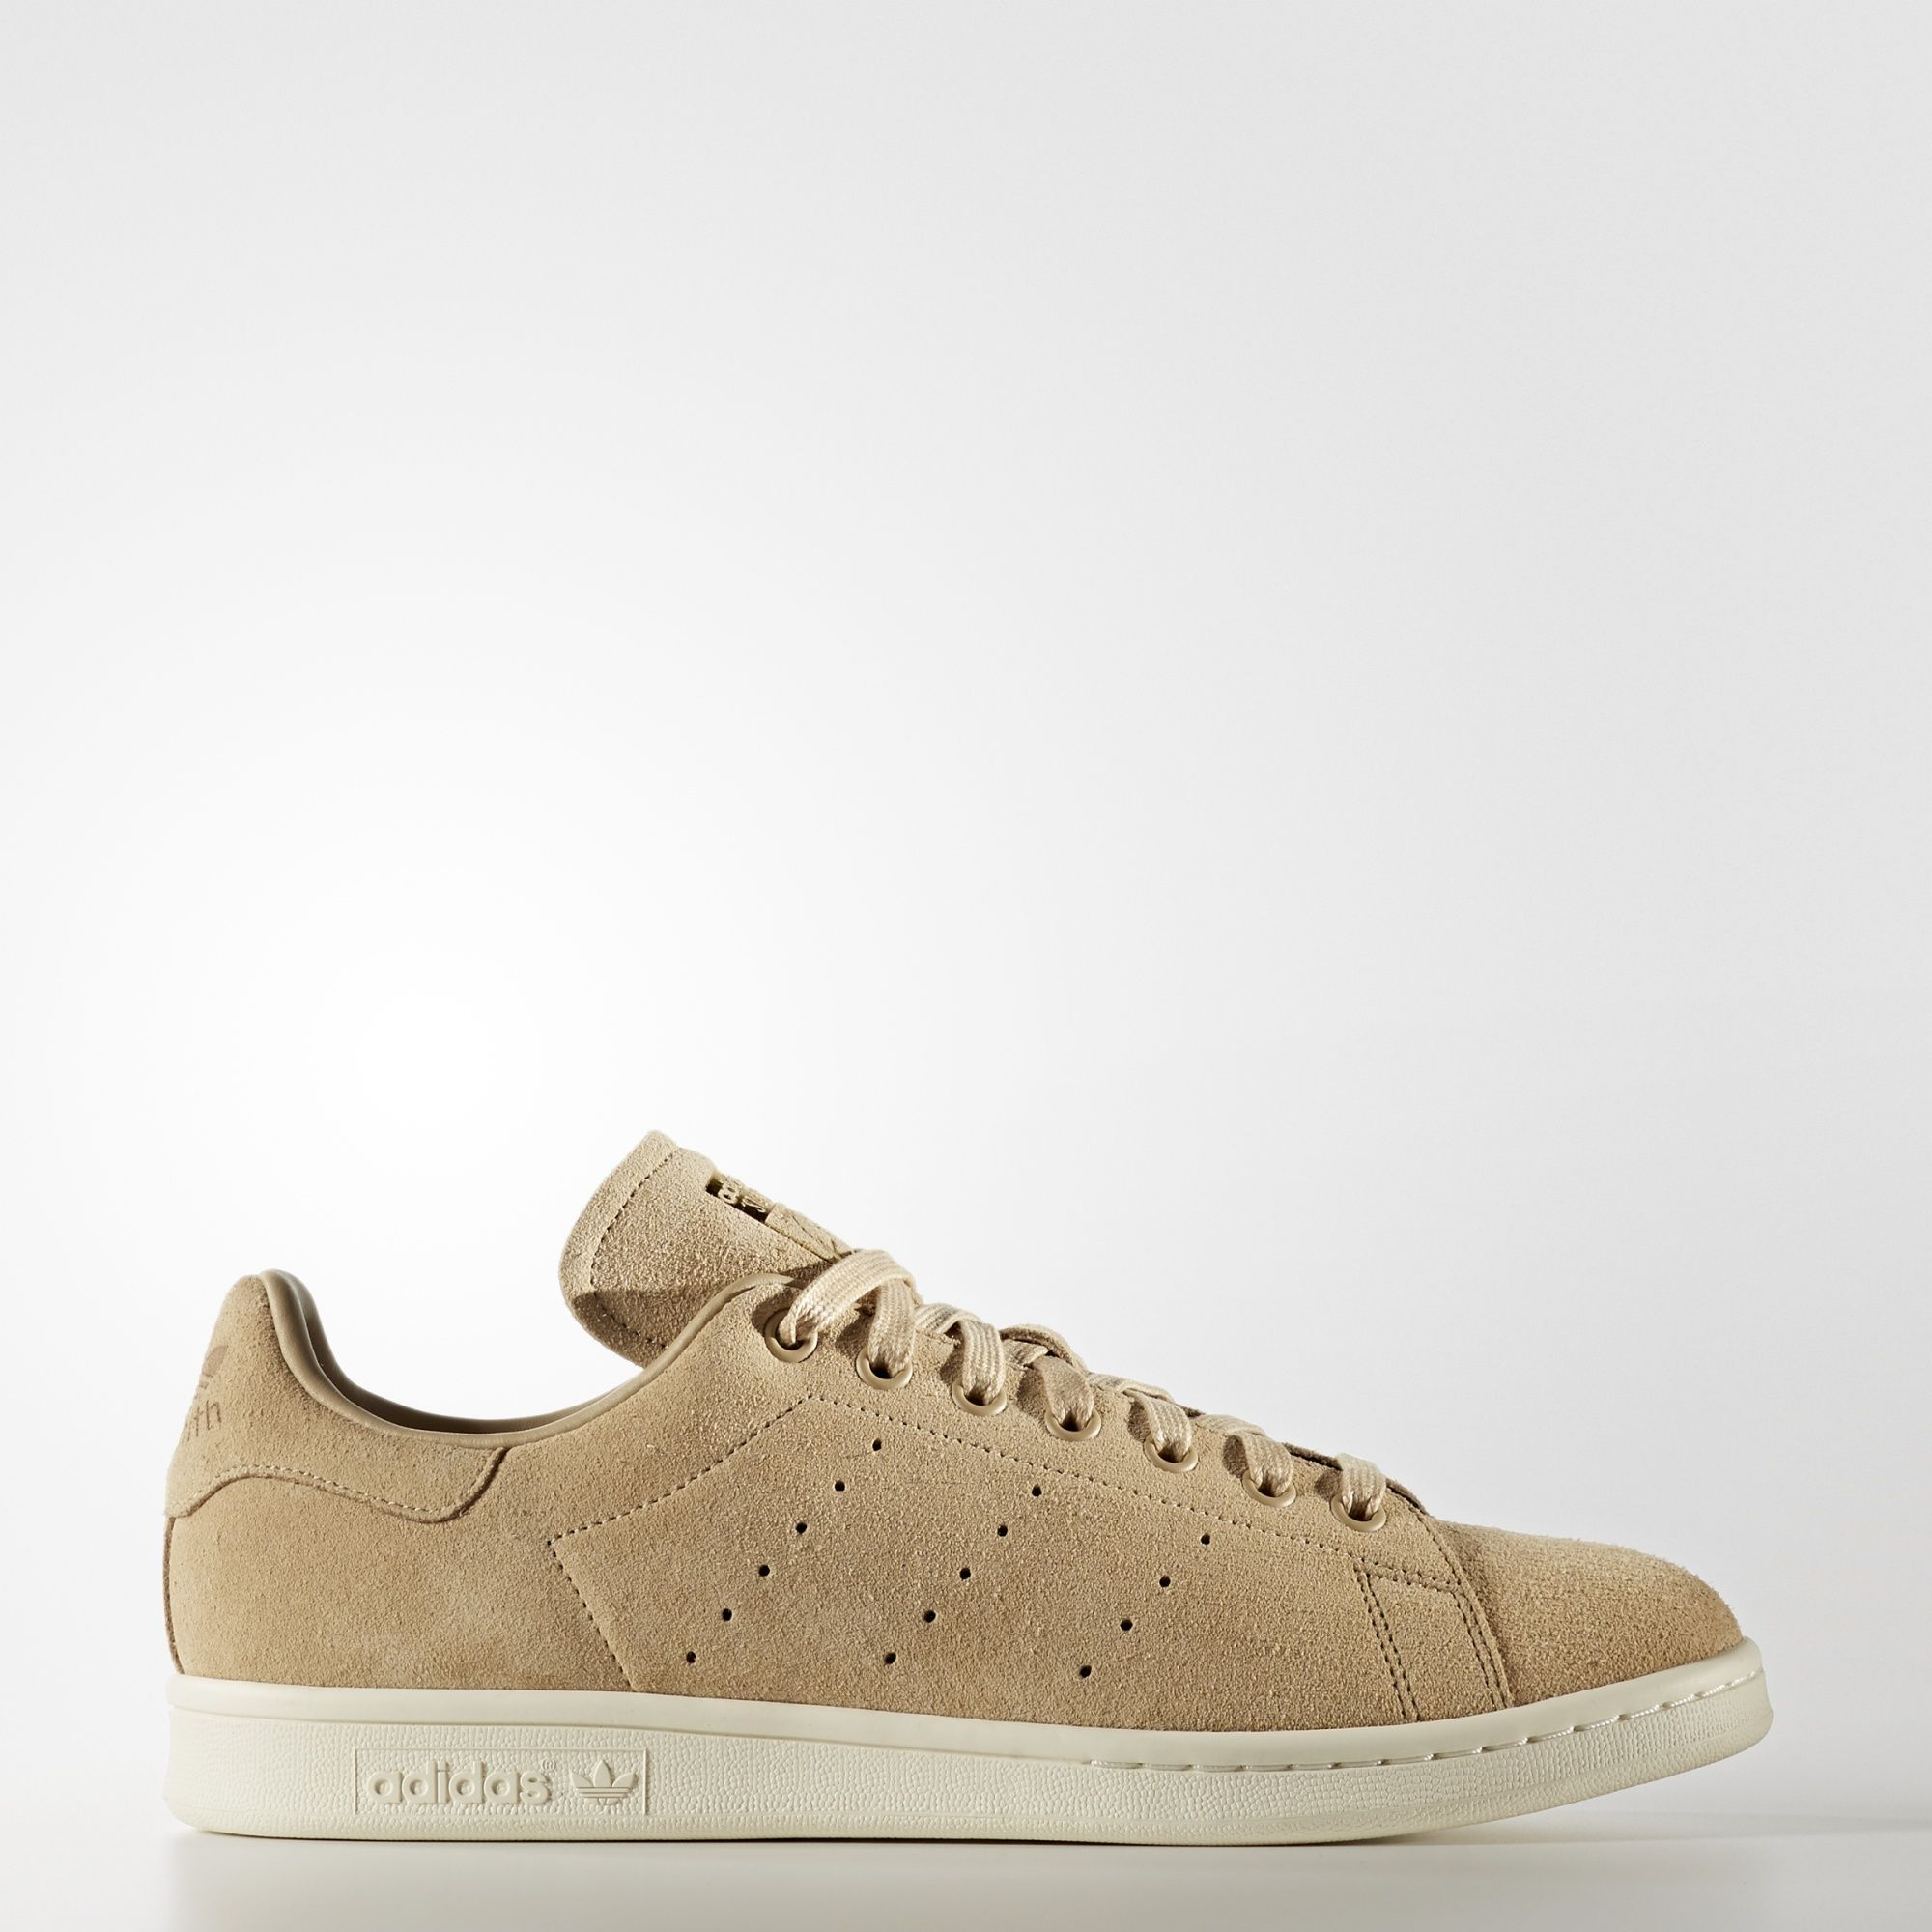 adidas Stan Smith Chaussures Chaussures Pinterest chaussures Stan